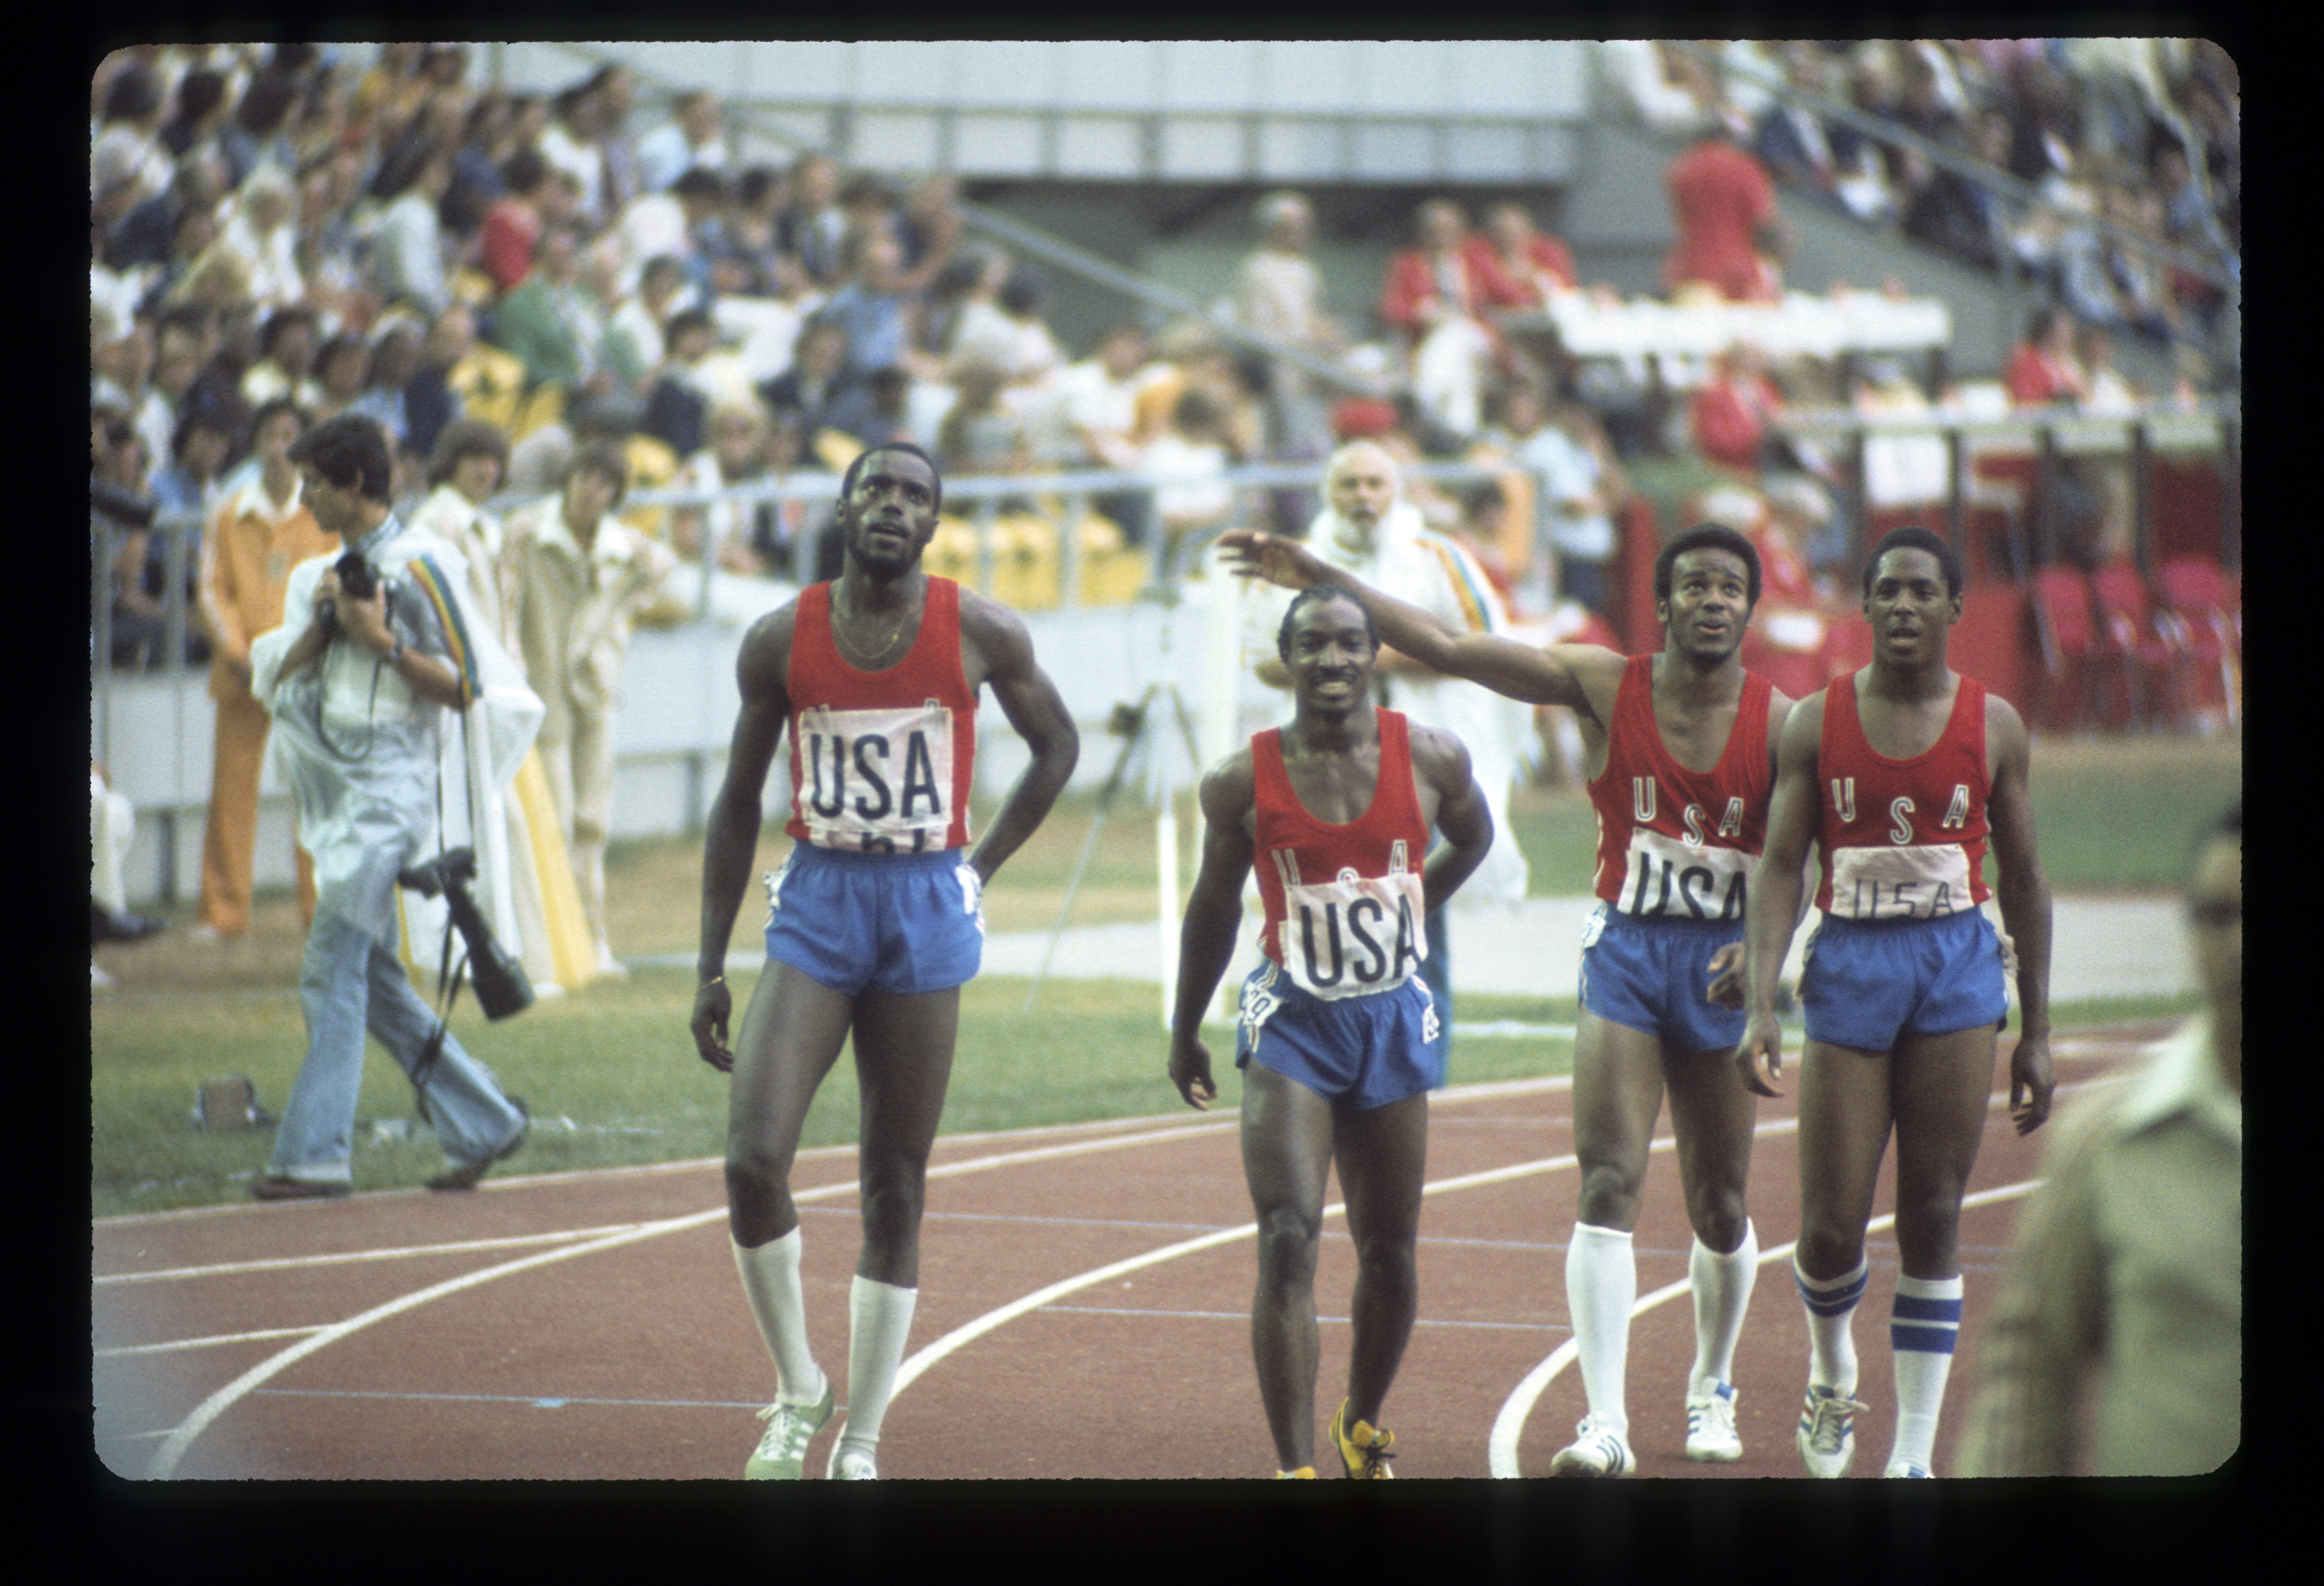 1976 MEN'S 4 X 100 RELAY OLYMPIC GOLD MEDAL WINNERS